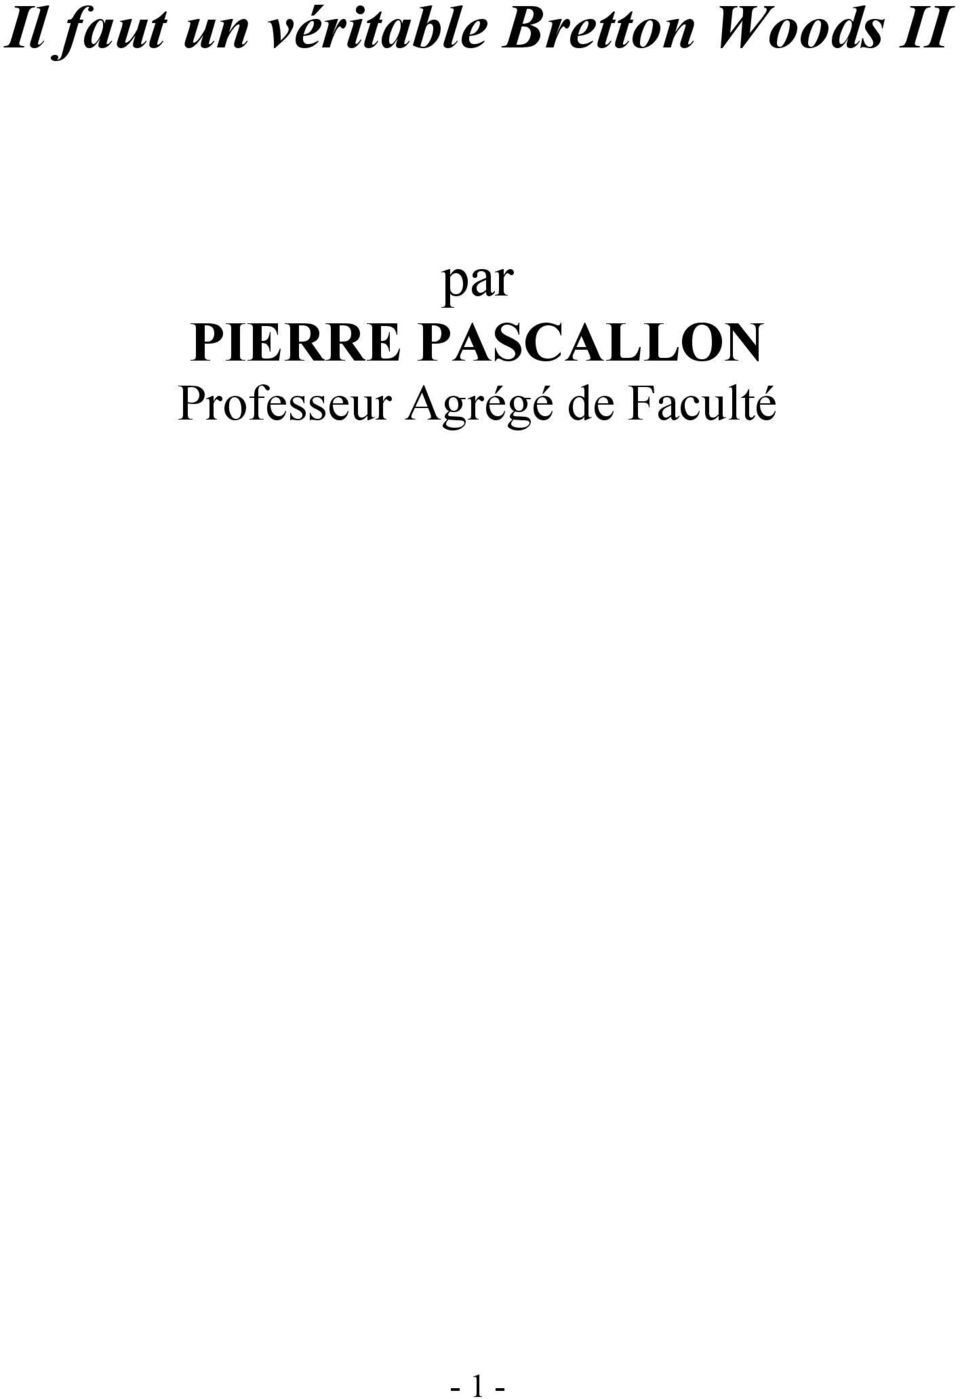 PIERRE PASCALLON